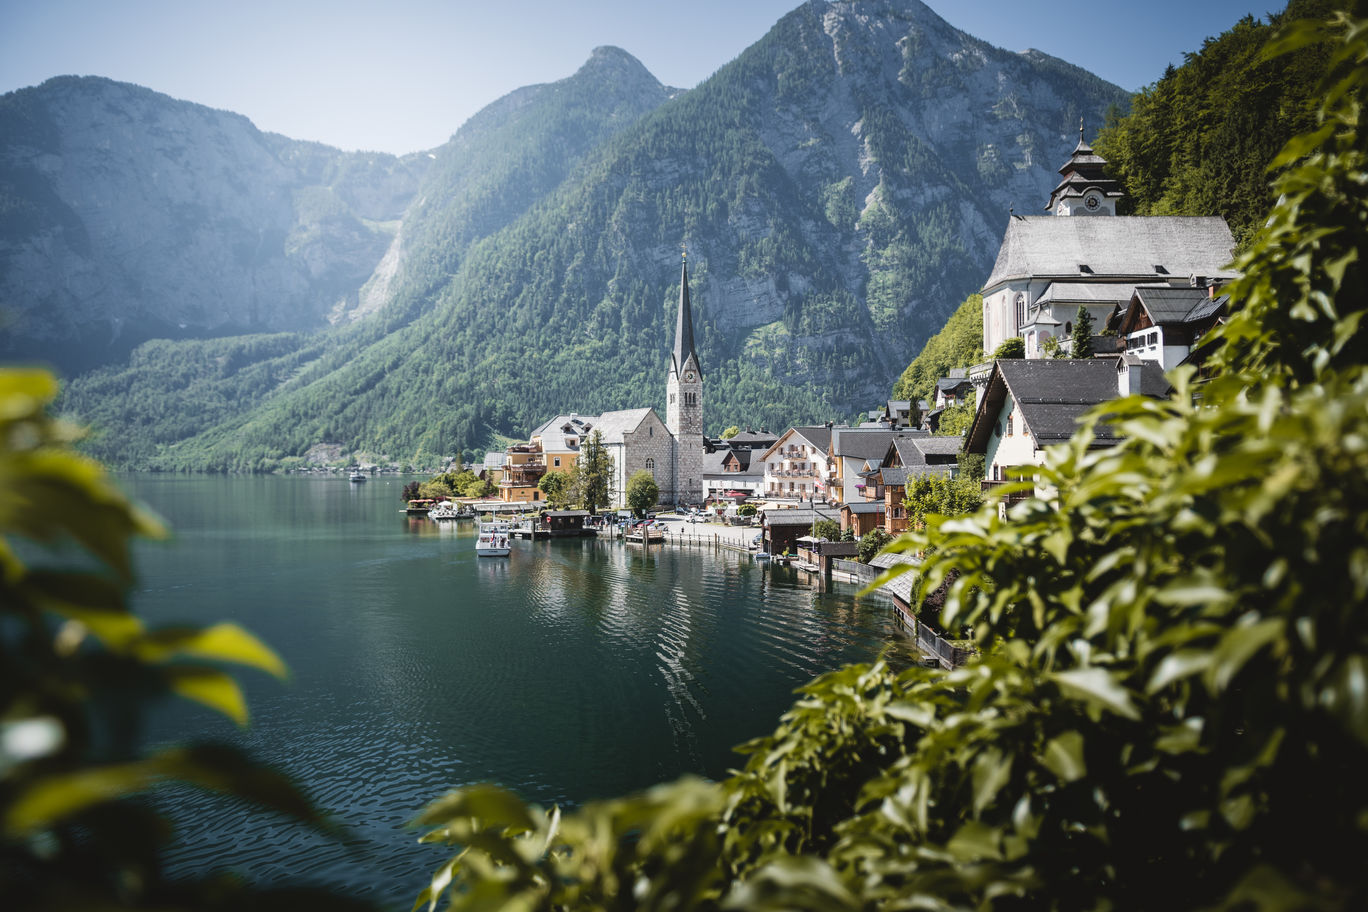 Photo of Hallstatt By Priyanka Tiwari